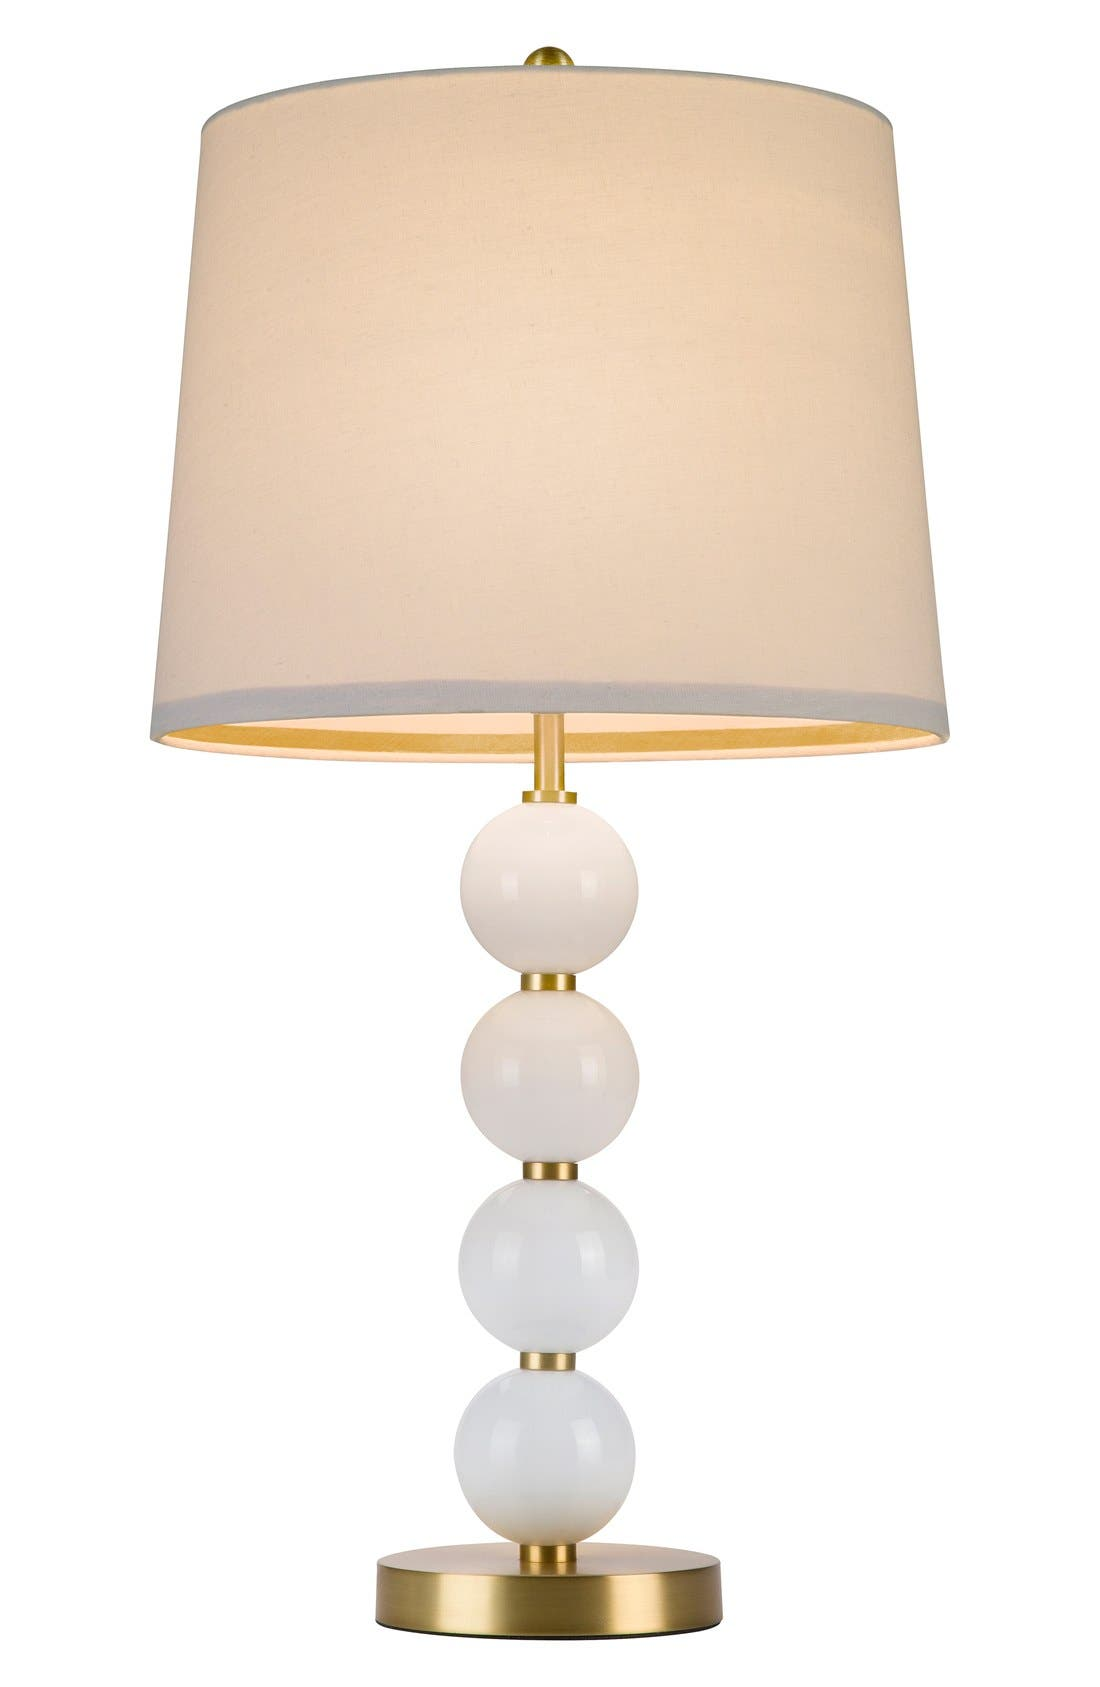 Main Image - cupcakes and cashmere Stacked Ball Table Lamp